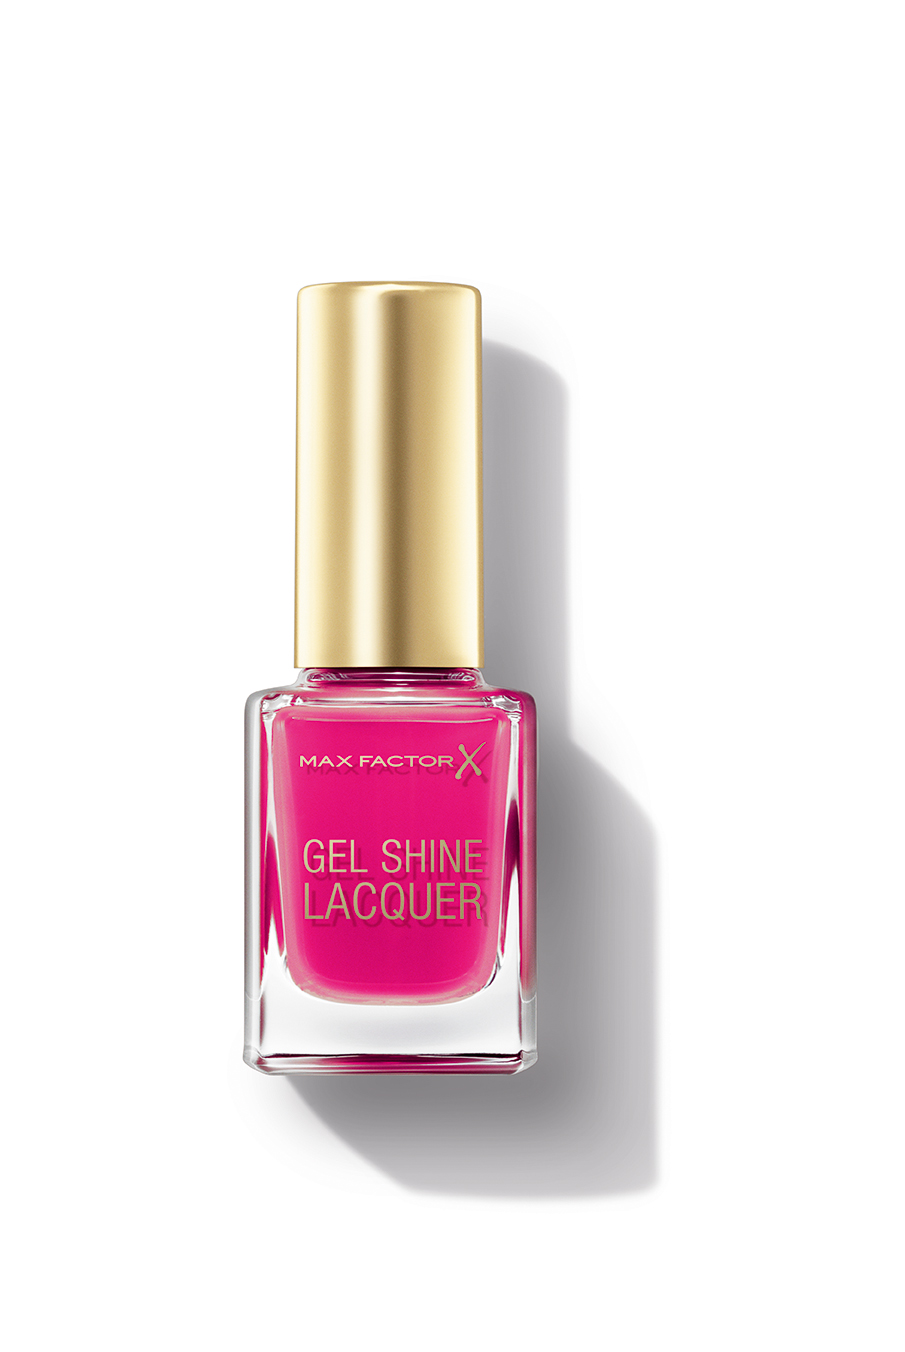 Max Factor Gel Shine Laquer Twinkling Pink Pack.jpg